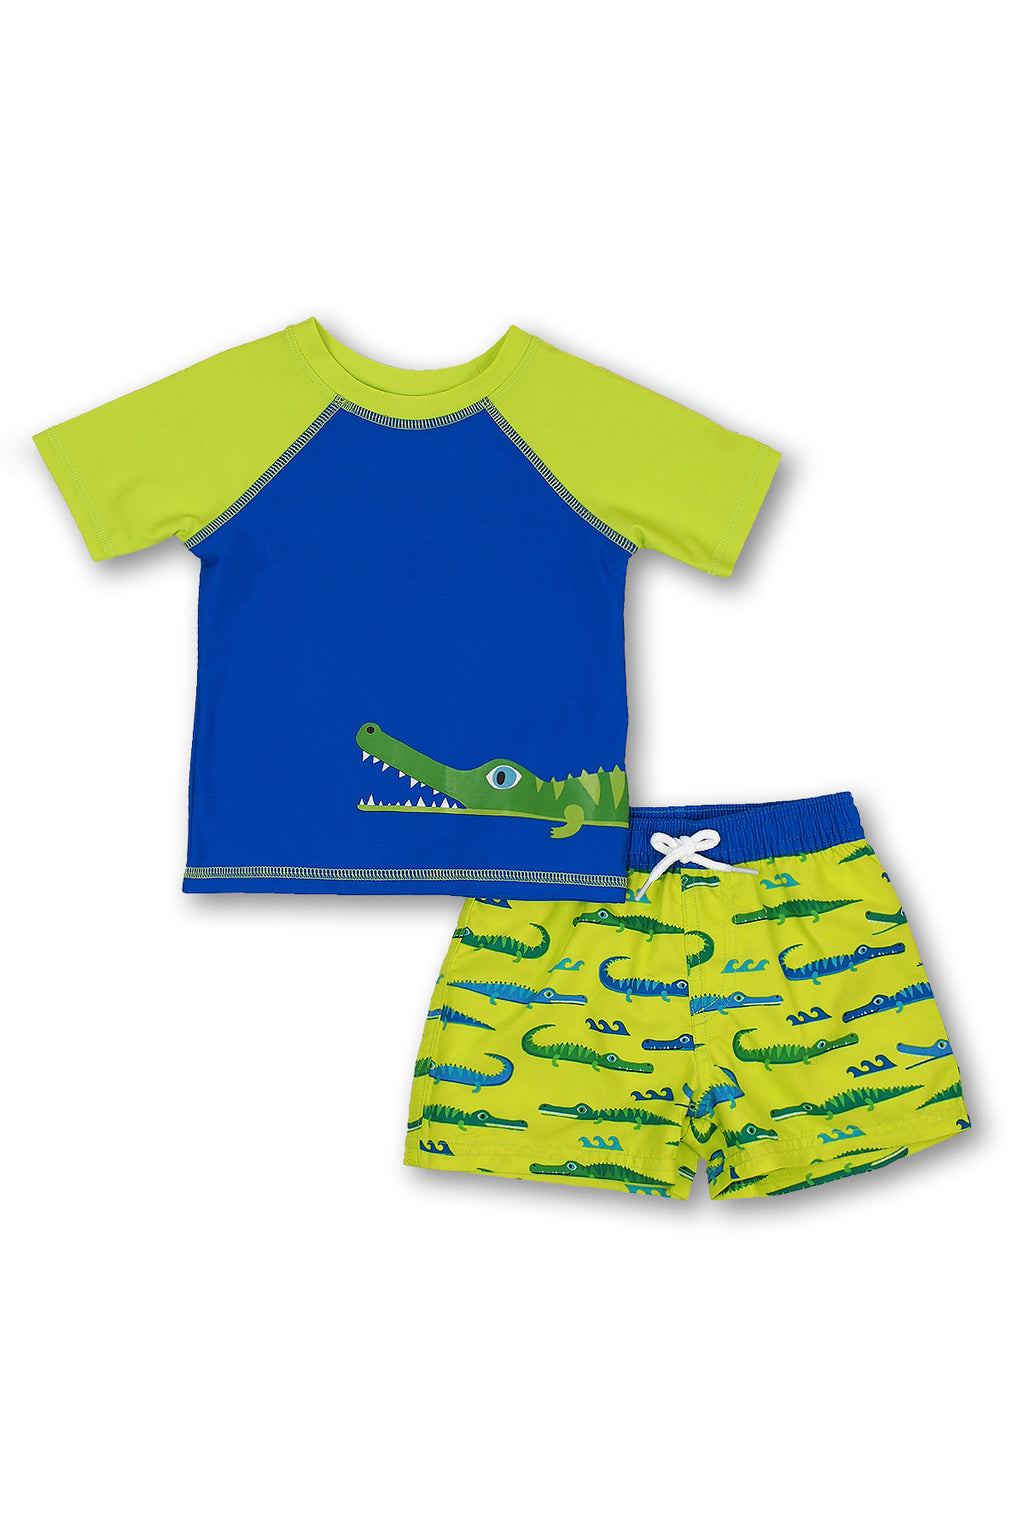 Boys Crocodile Short Sleeve Rash Guard Set, Lime